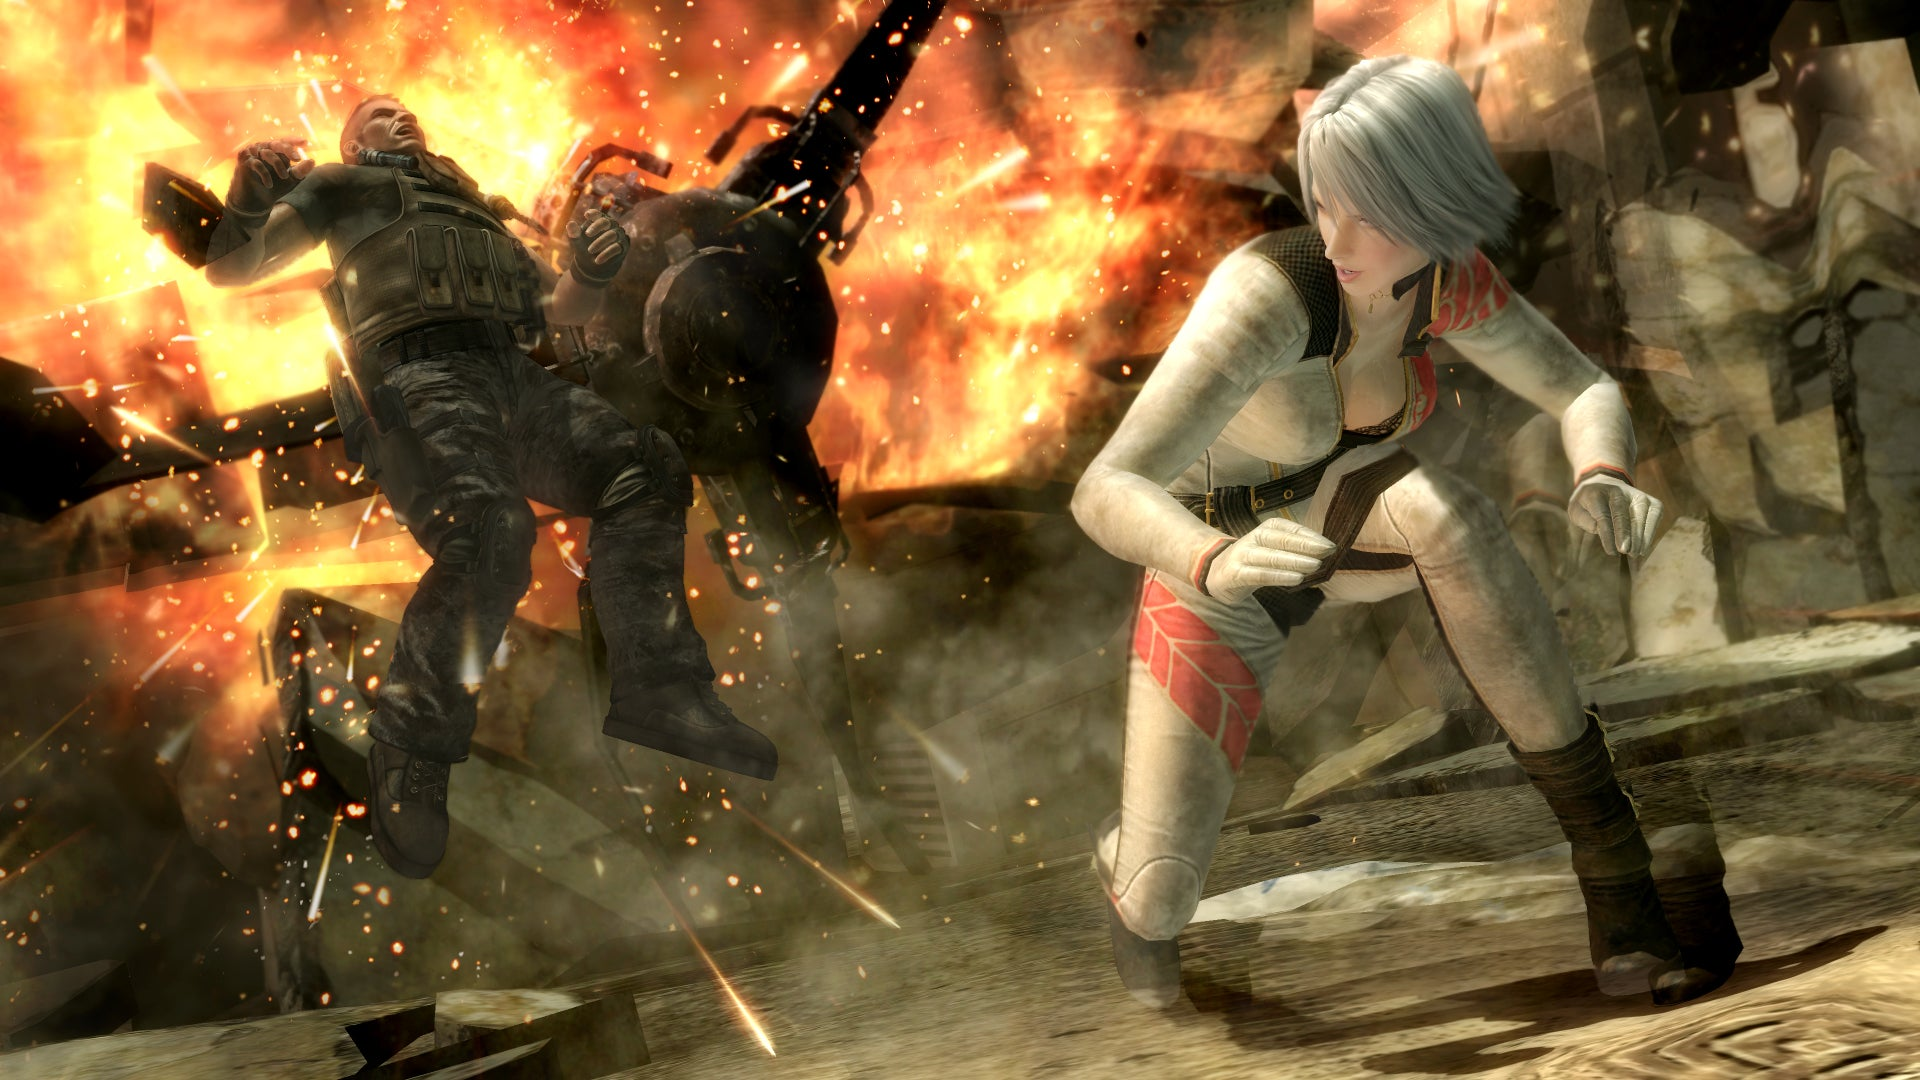 Dead Or Alive 5 Is The Latest Big Game Shipping With Too Many Glitches